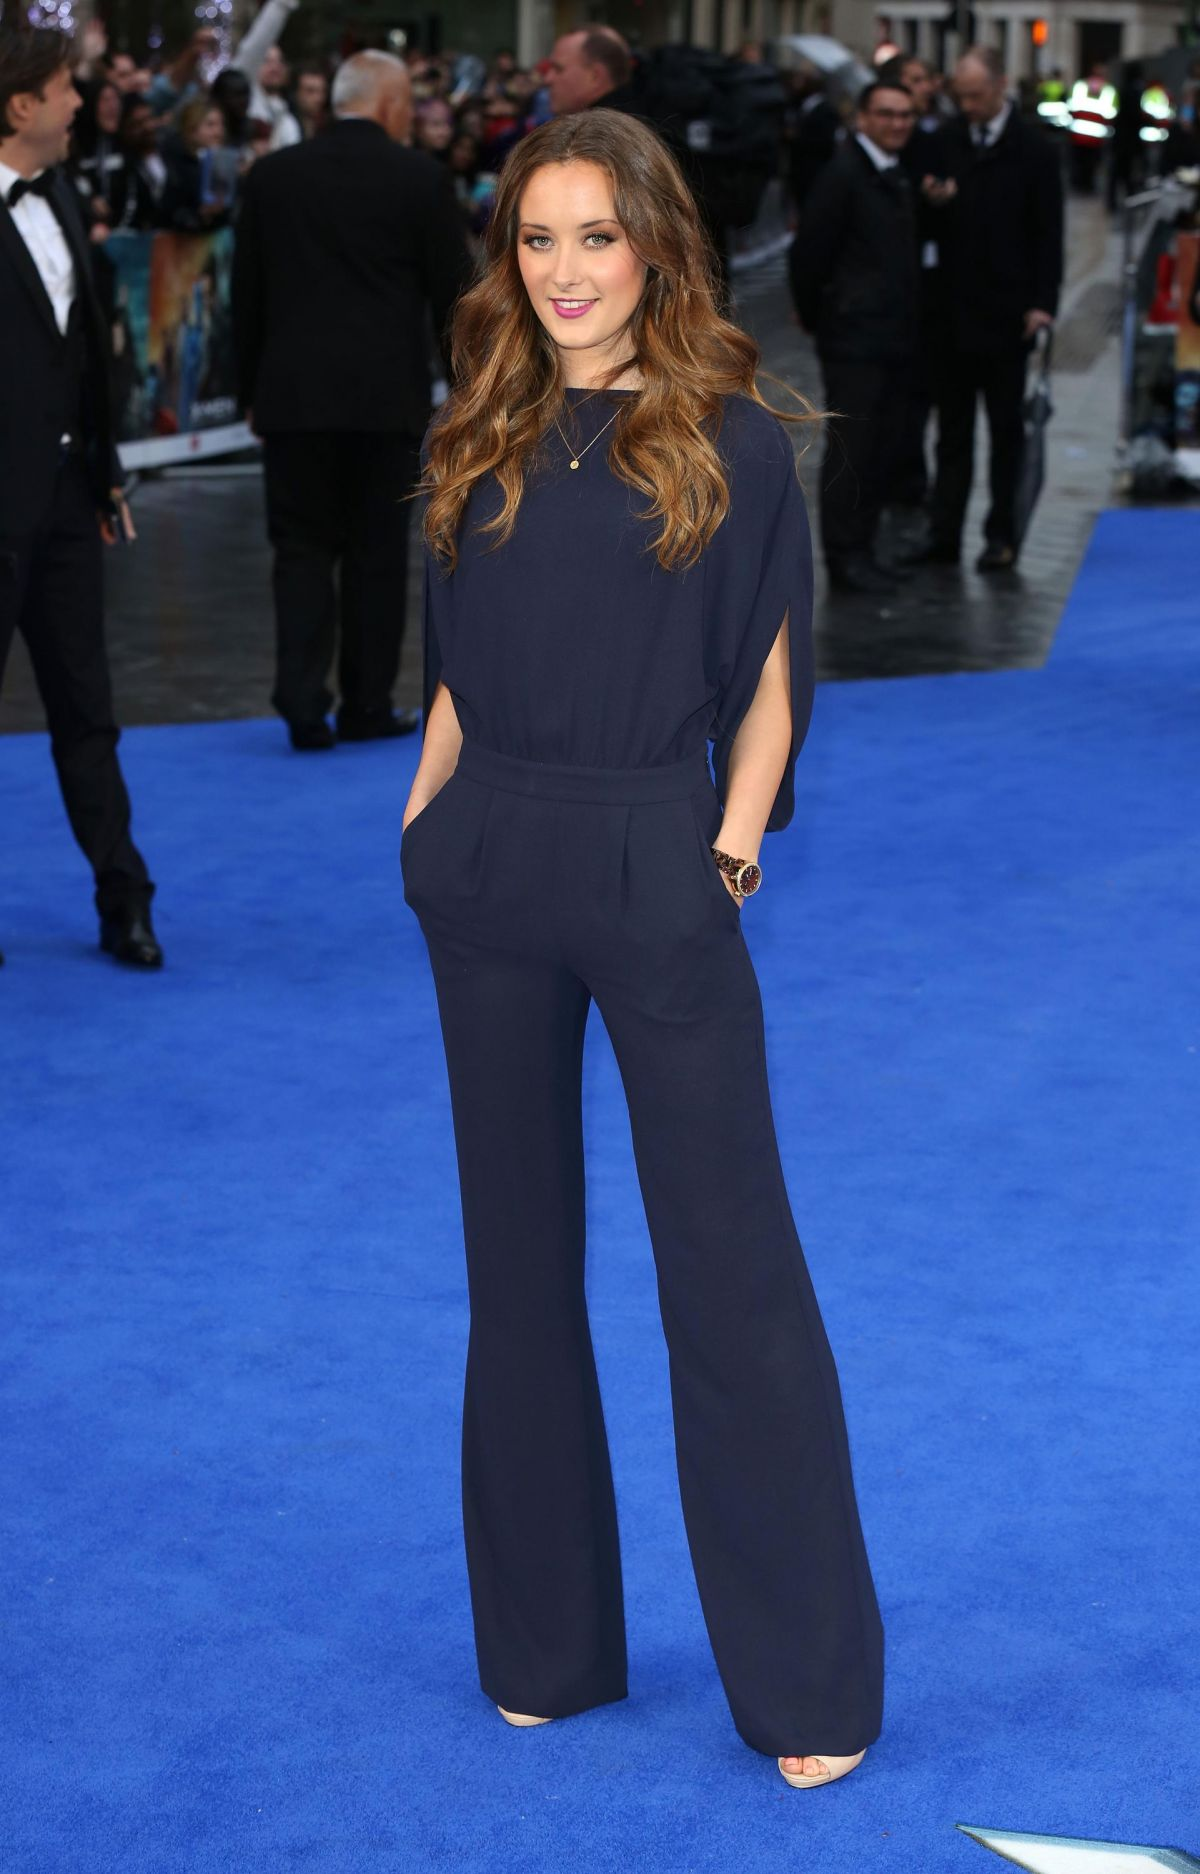 APRIL PEARSON at X-men: Days of Future Past Premiere in London